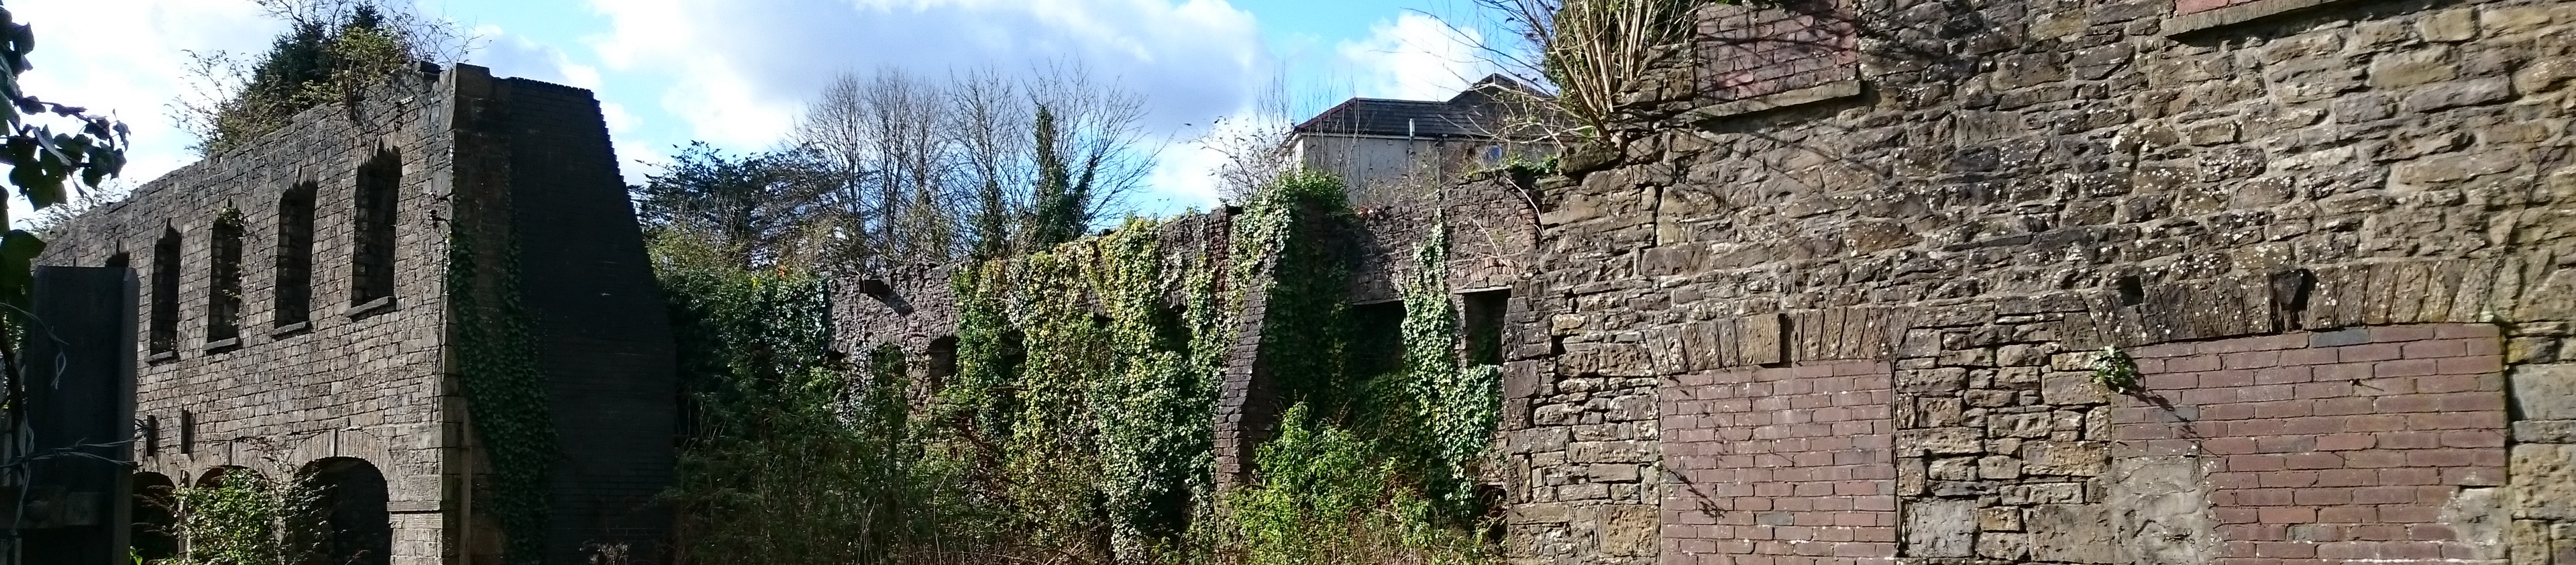 Neath Abbey iron works